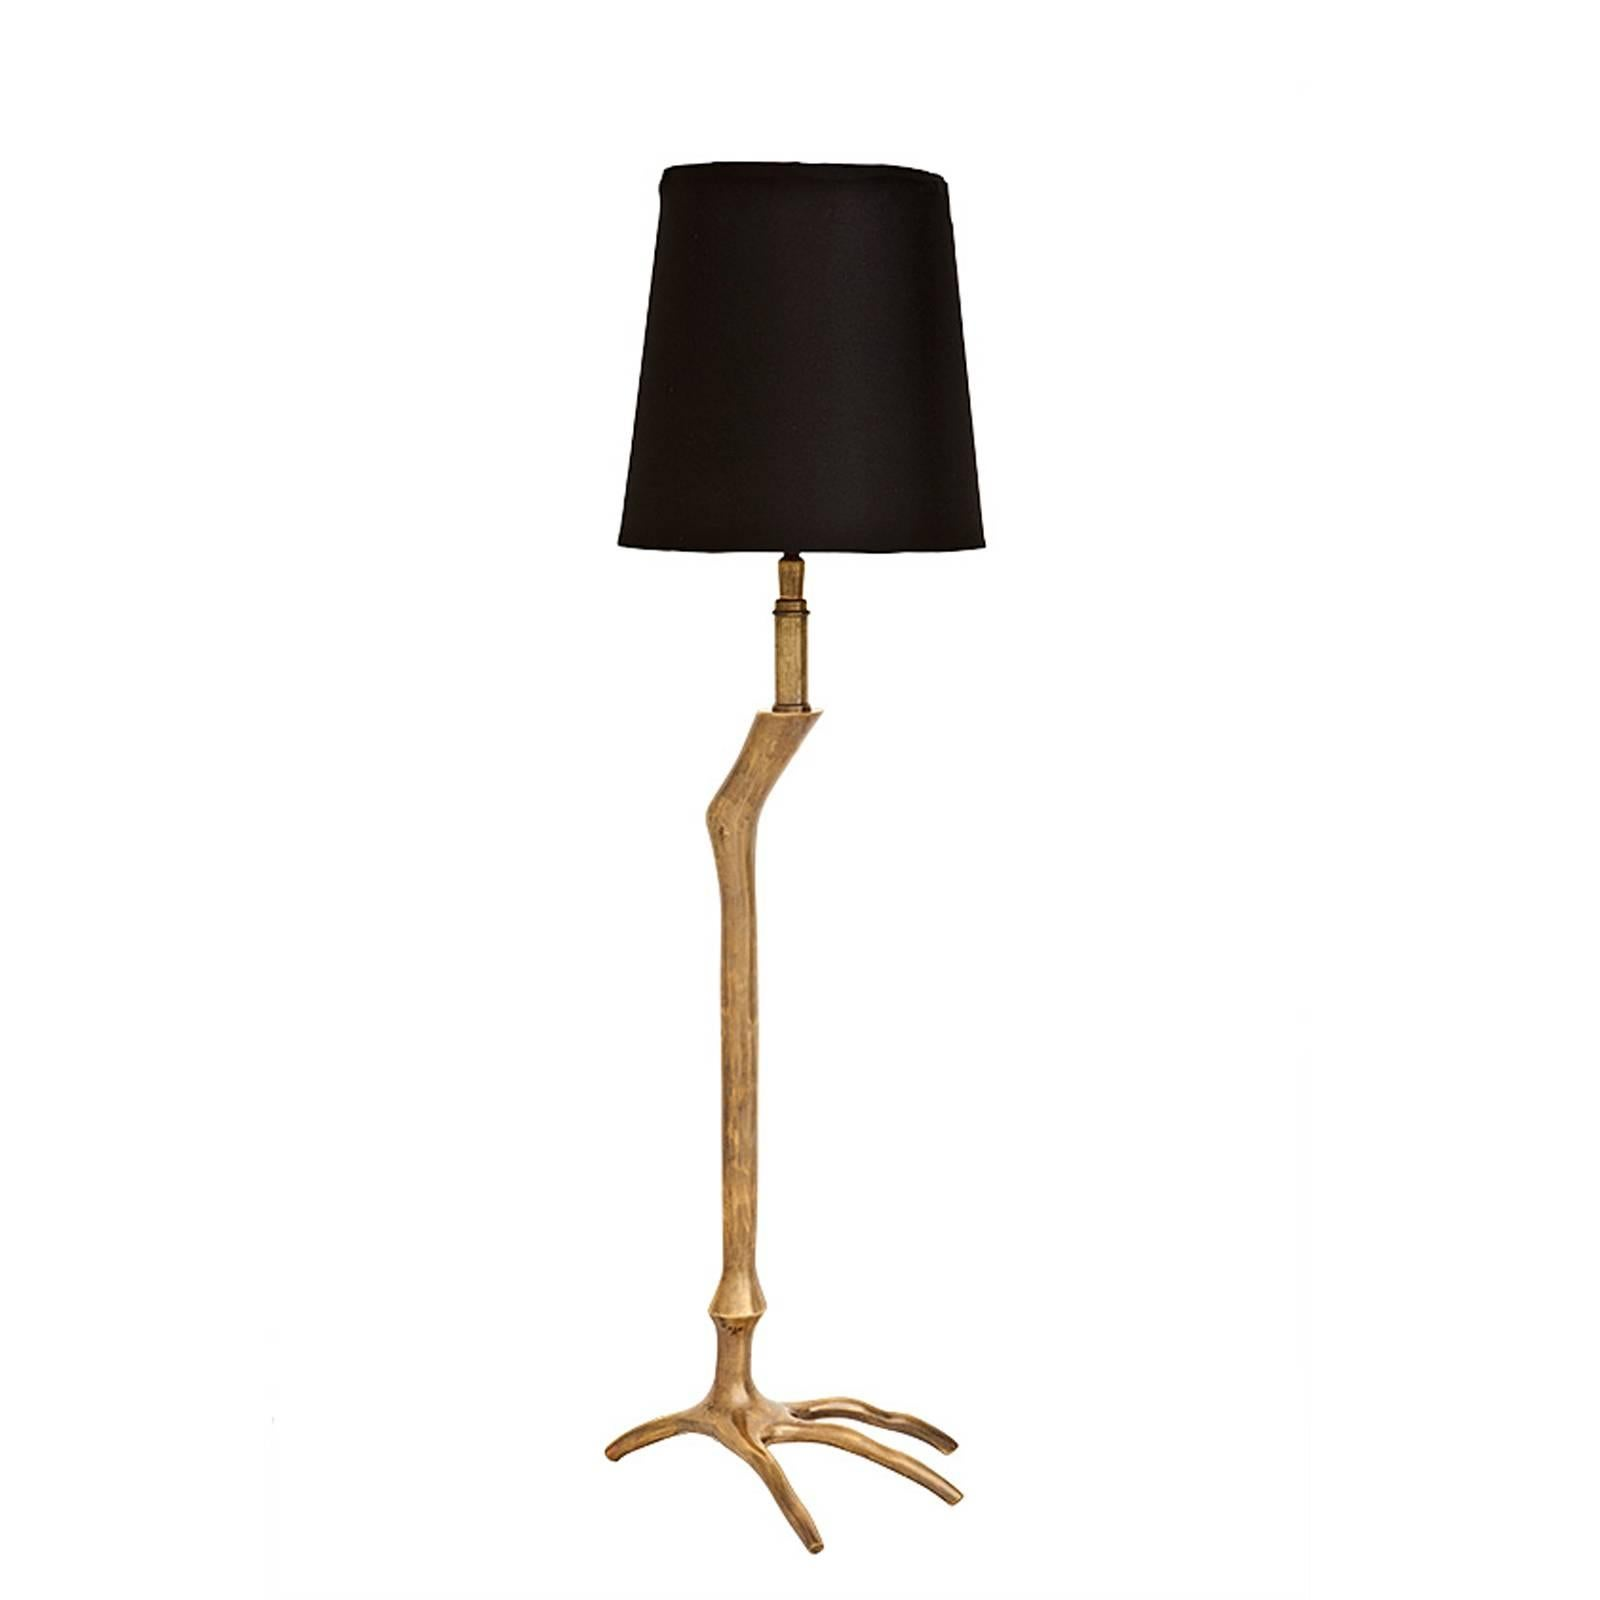 Ostrich Table Lamp in Vintage Brass or Nickel Finish